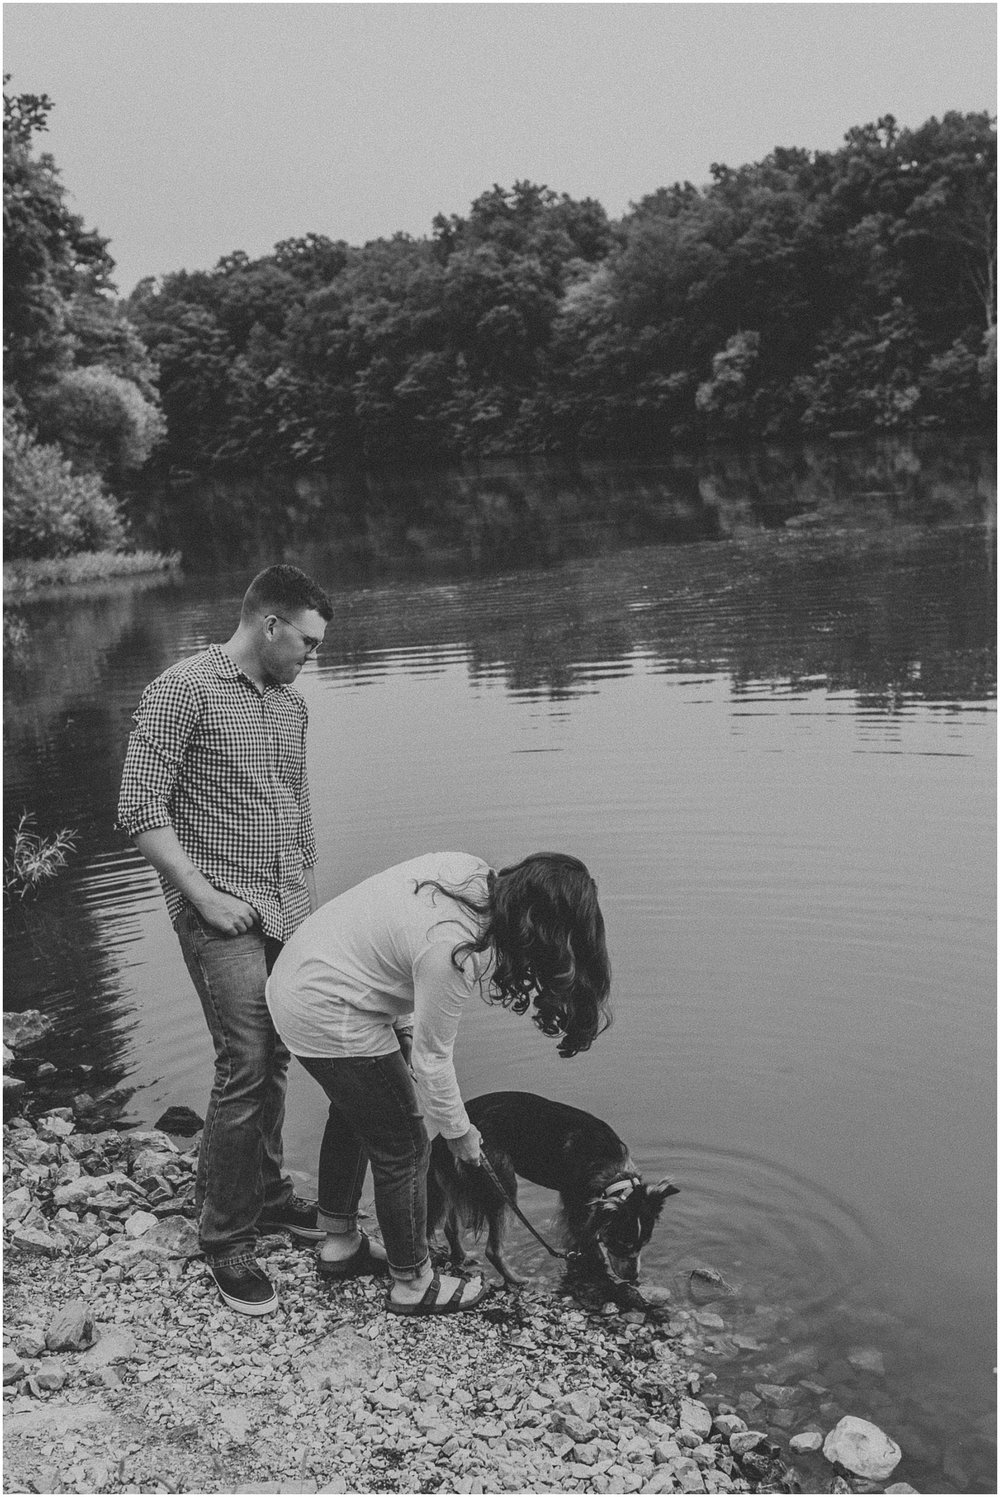 gifford pinchot state park-engagement-anniversary-photo session-outdoor photos-husband-wife-central pennsylvania_0312.jpg